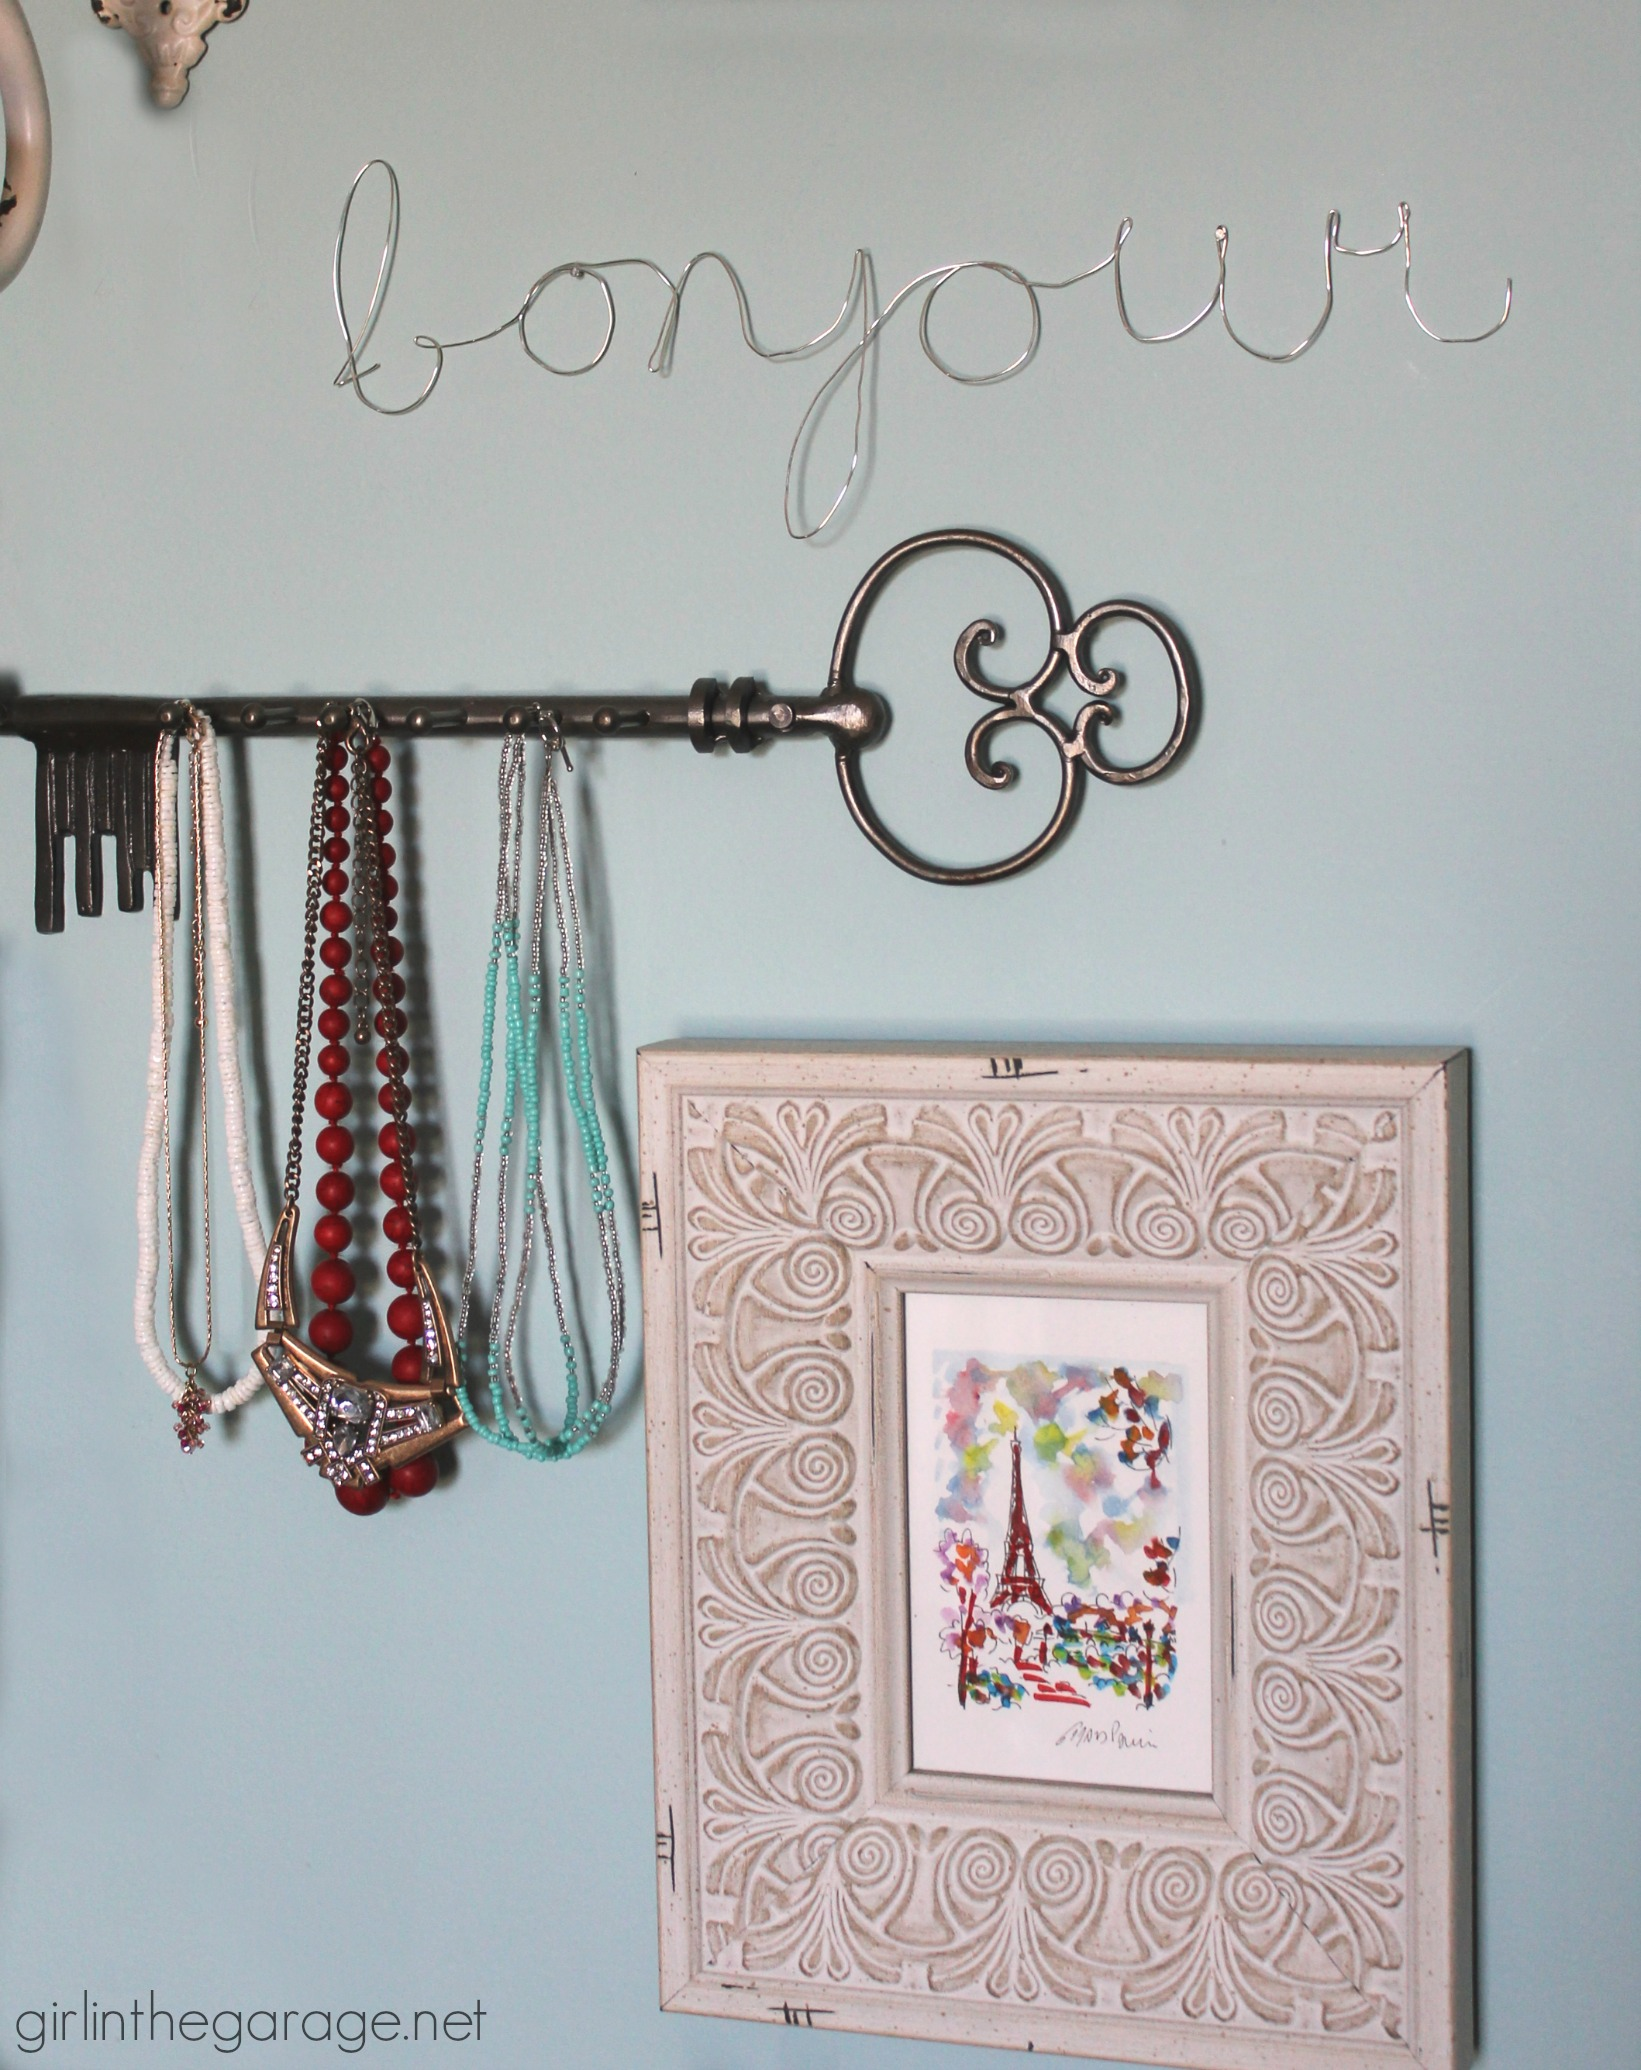 DIY jewelry wall to organize and display necklaces - by Girl in the Garage